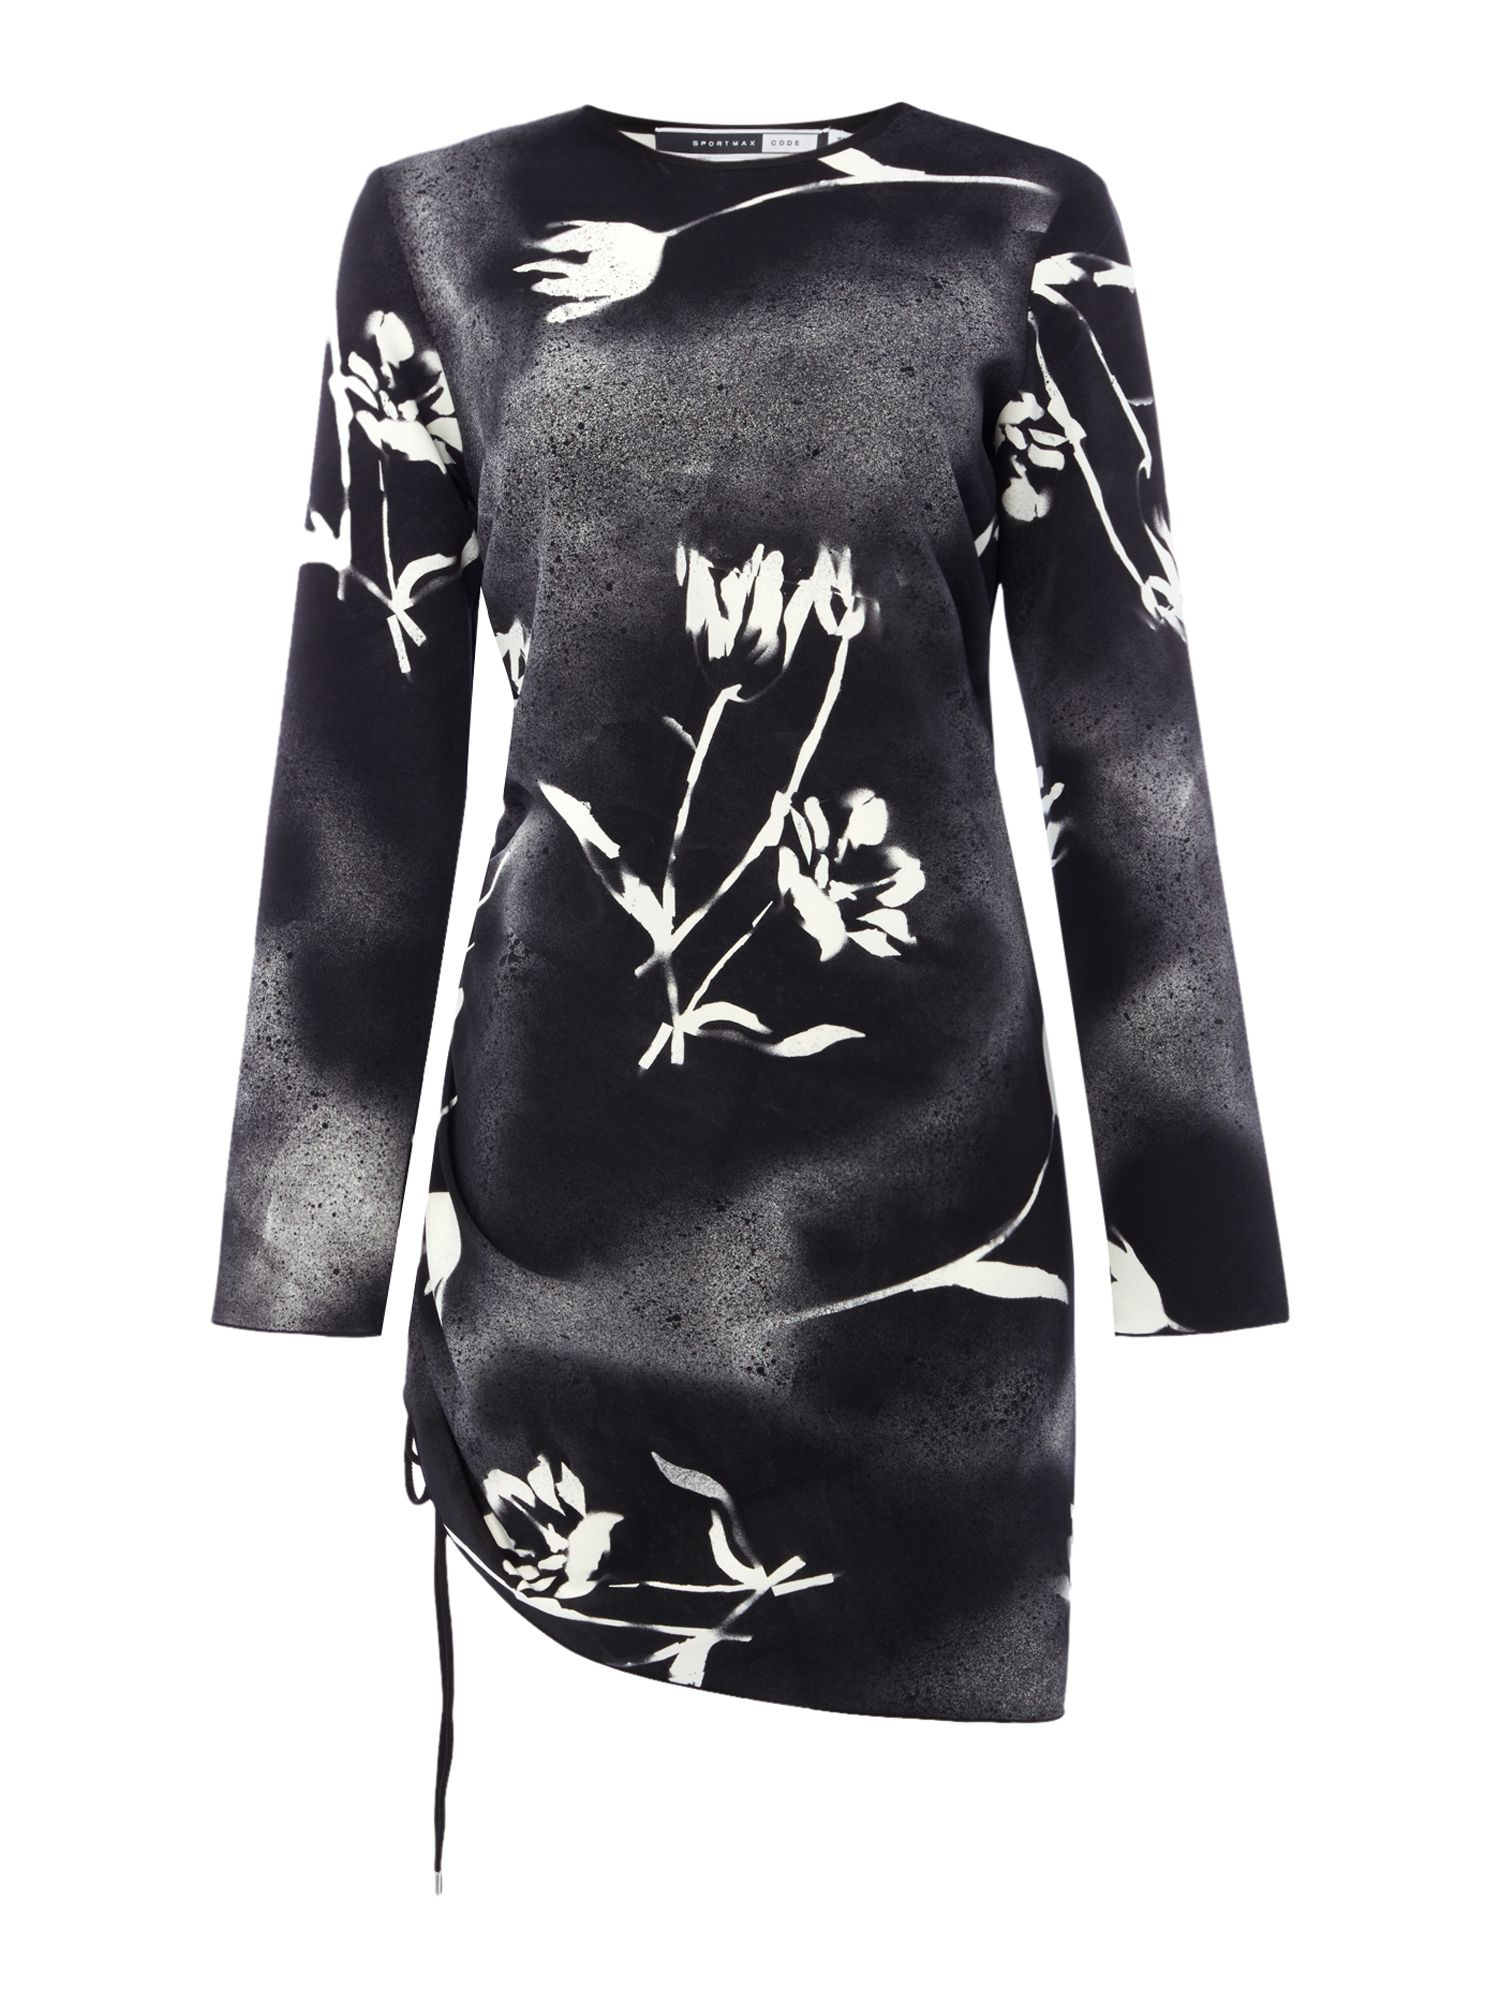 Sportmax Code Faraone graffiti floral dress with ruching, Black